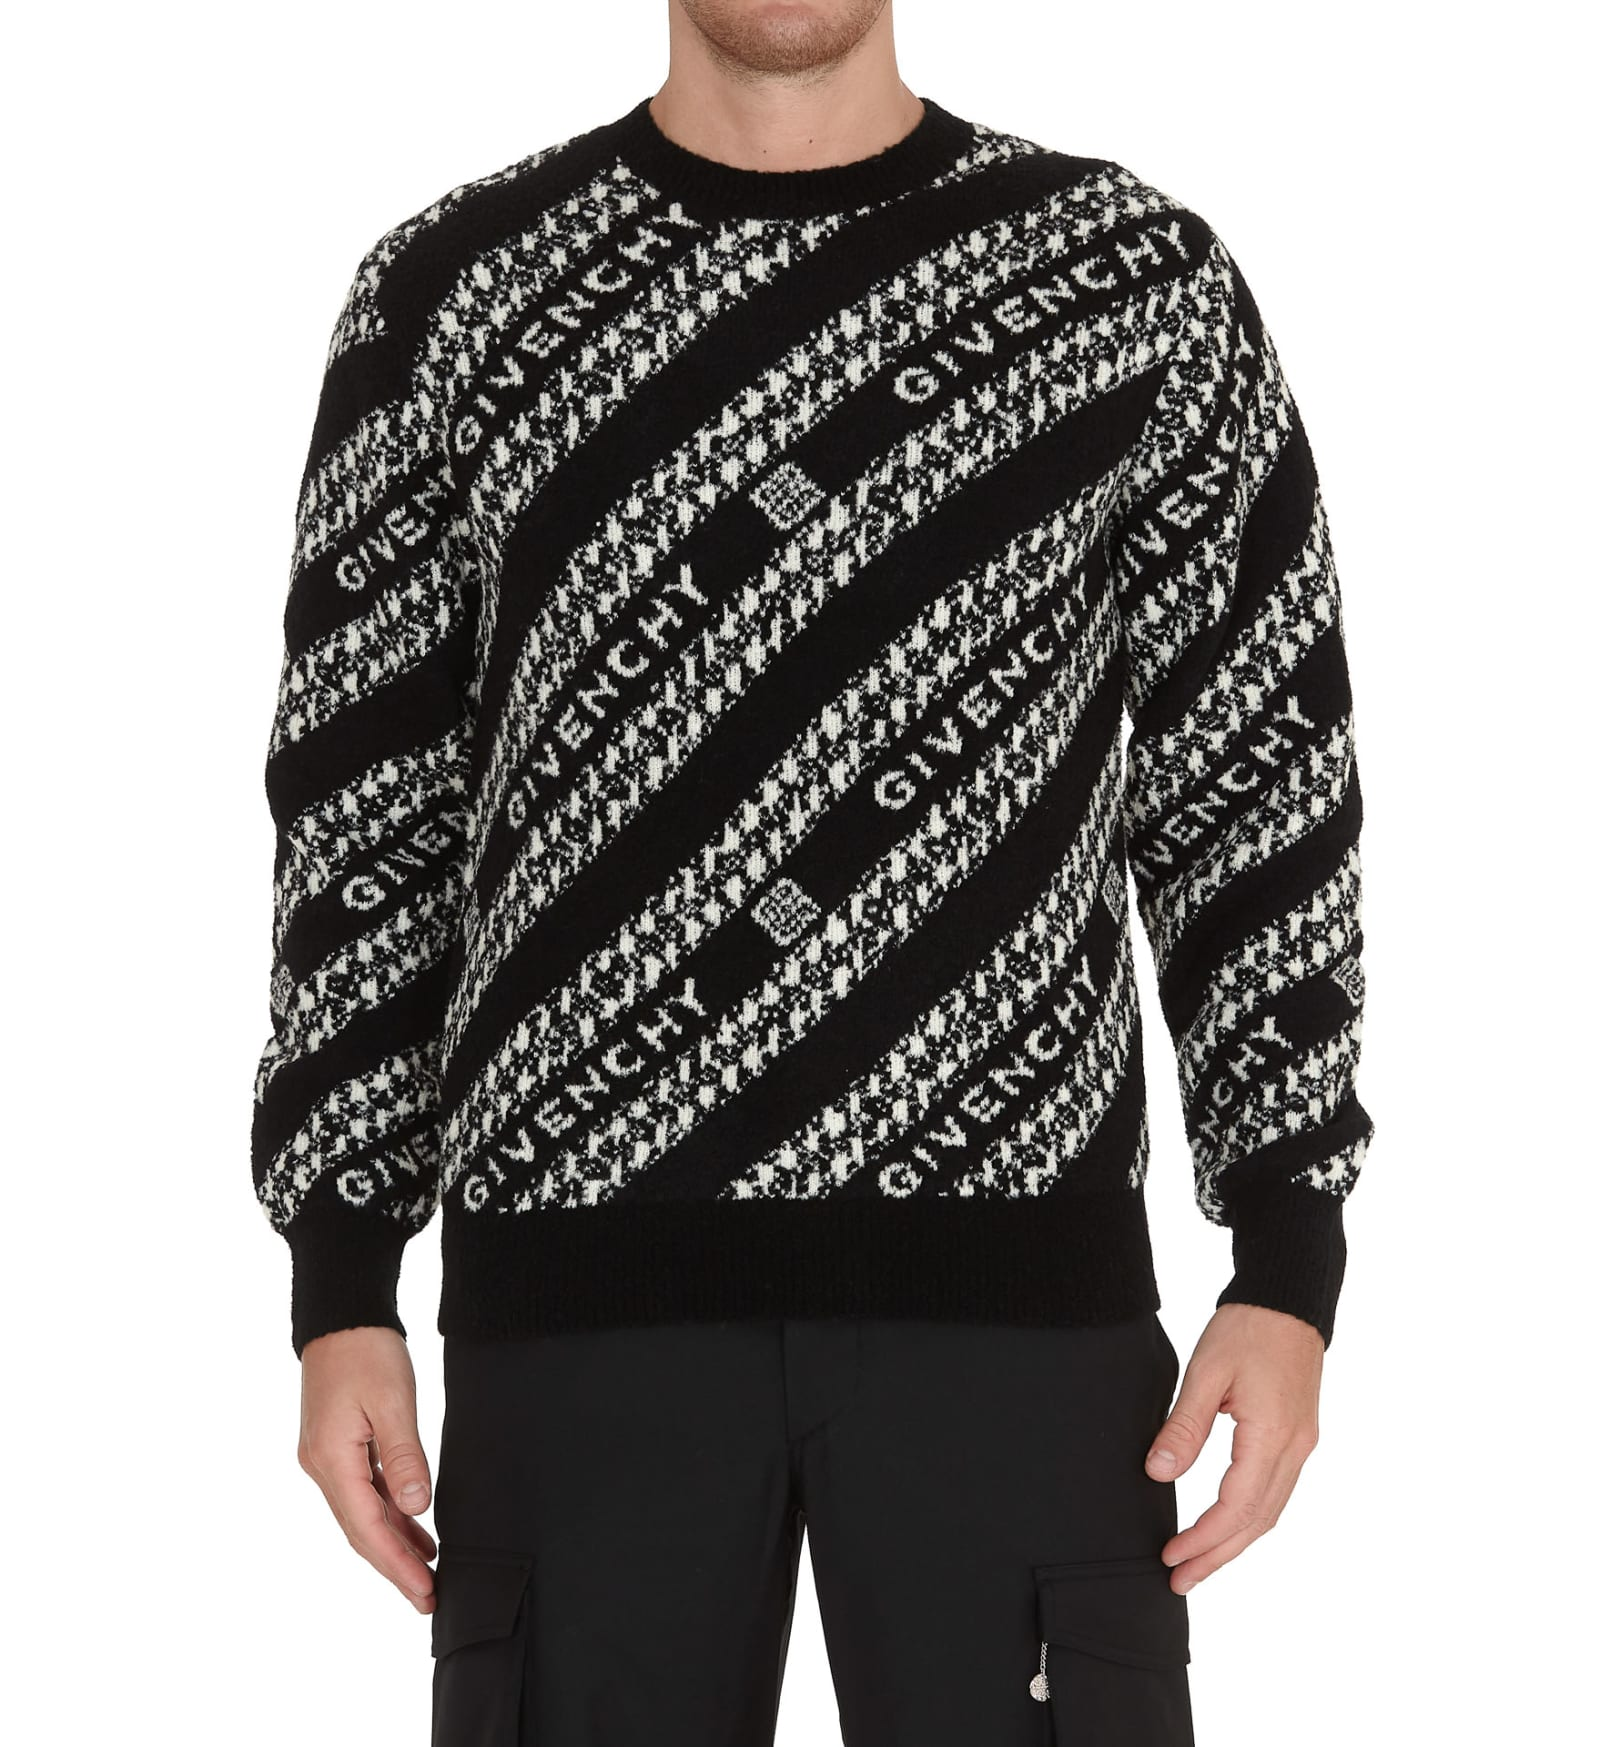 Givenchy Wools LOGO SWEATER